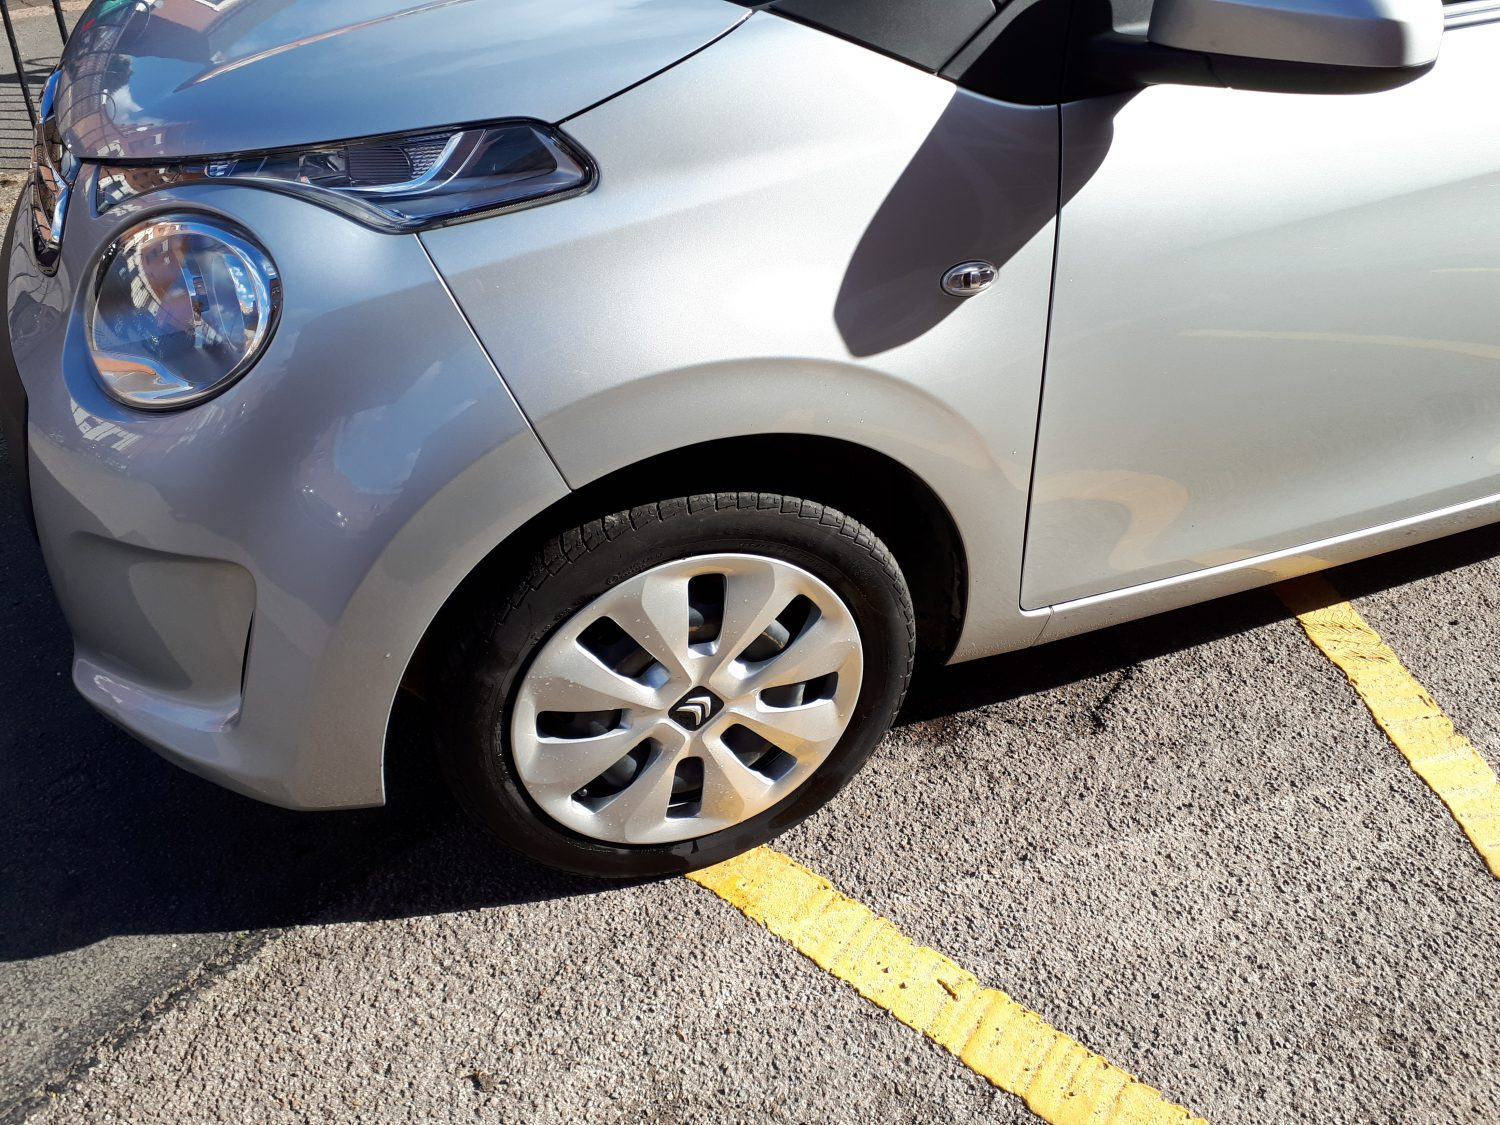 Silver Citroen C1 2016 for sale - boot